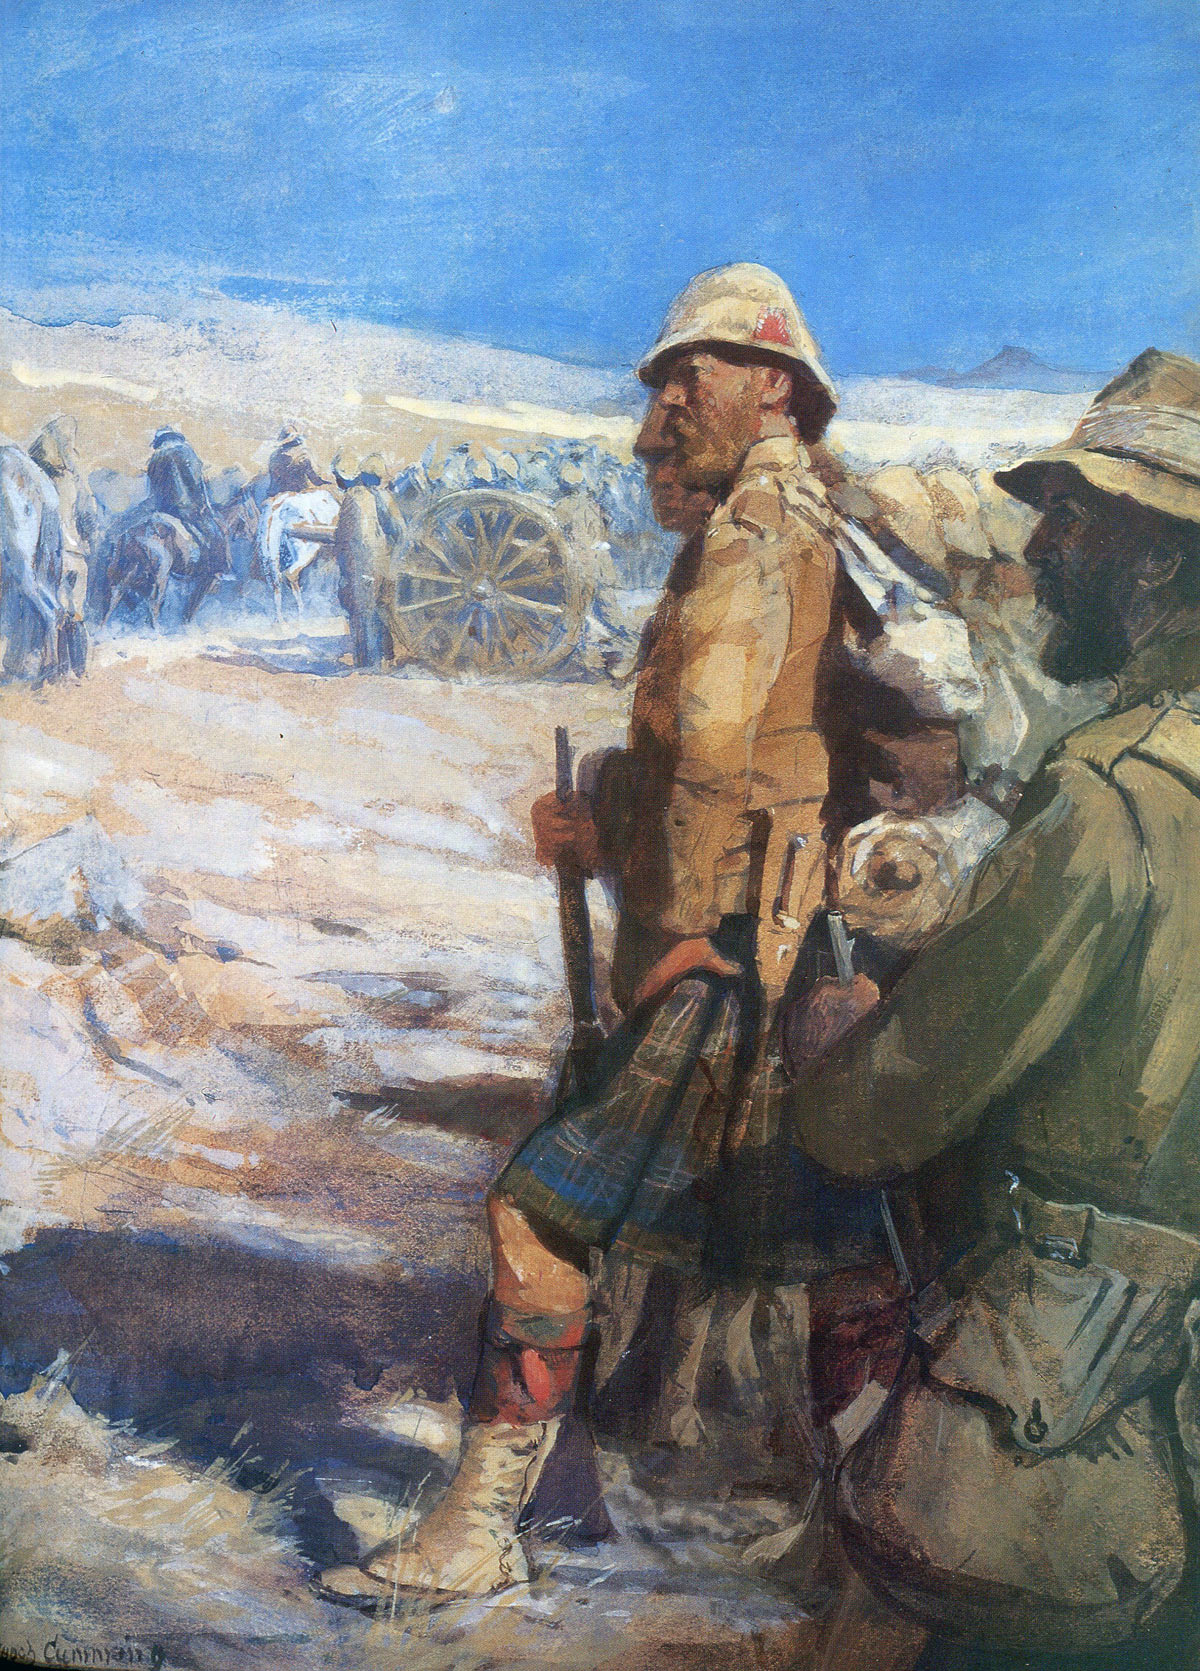 Highlanders at the Boer surrender: Battle of Paardeburg 27th February 1900 in the Great Boer War: picture by Skeoch Cumming